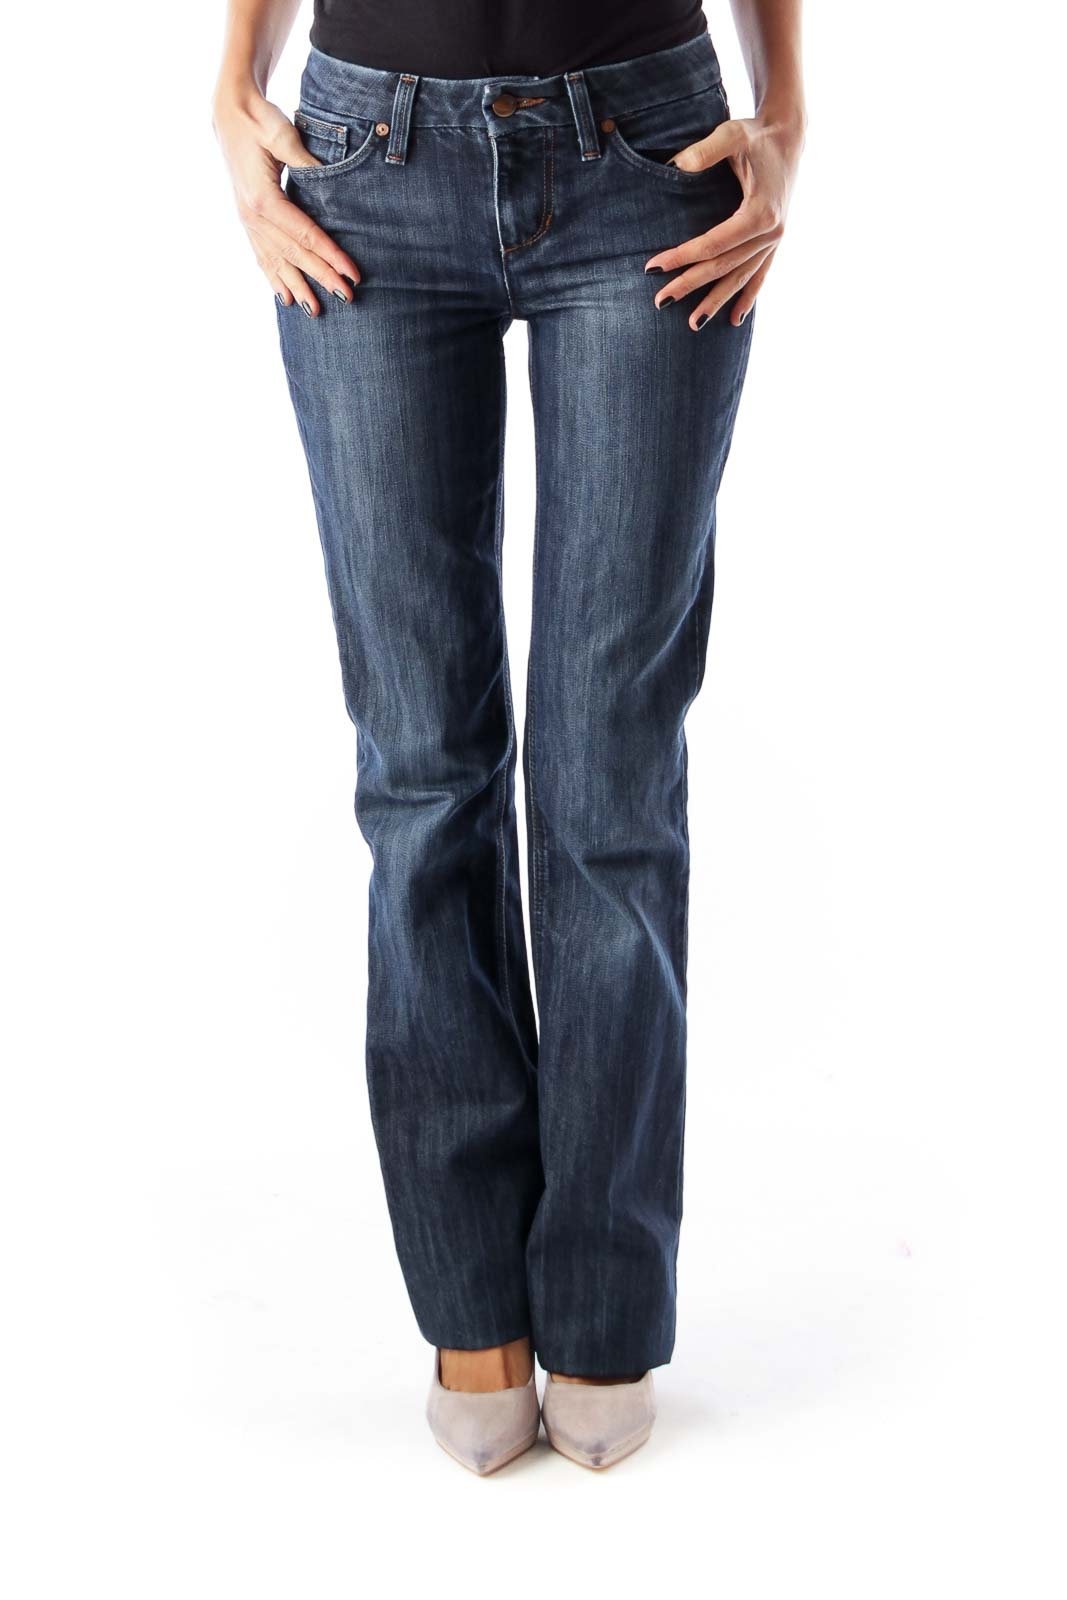 Blue Washed Flare Jeans Front